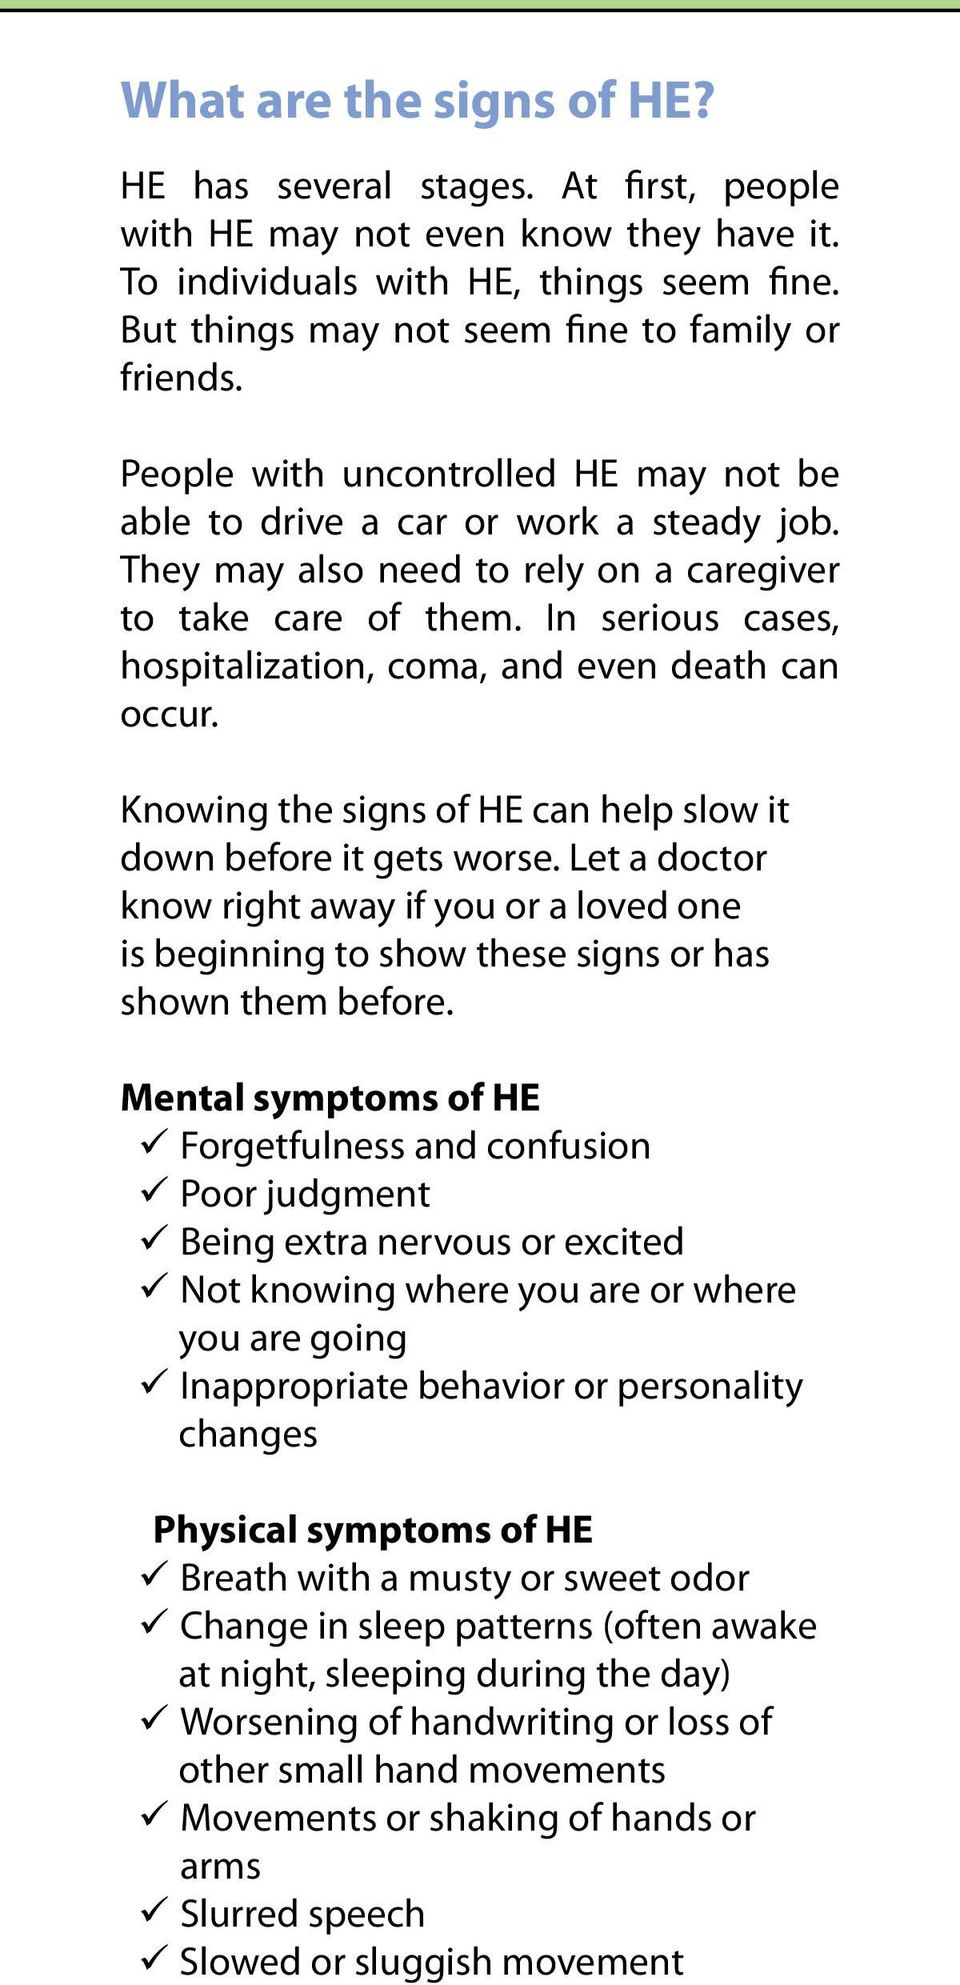 In serious cases, hospitalization, coma, and even death can occur. Knowing the signs of HE can help slow it down before it gets worse.